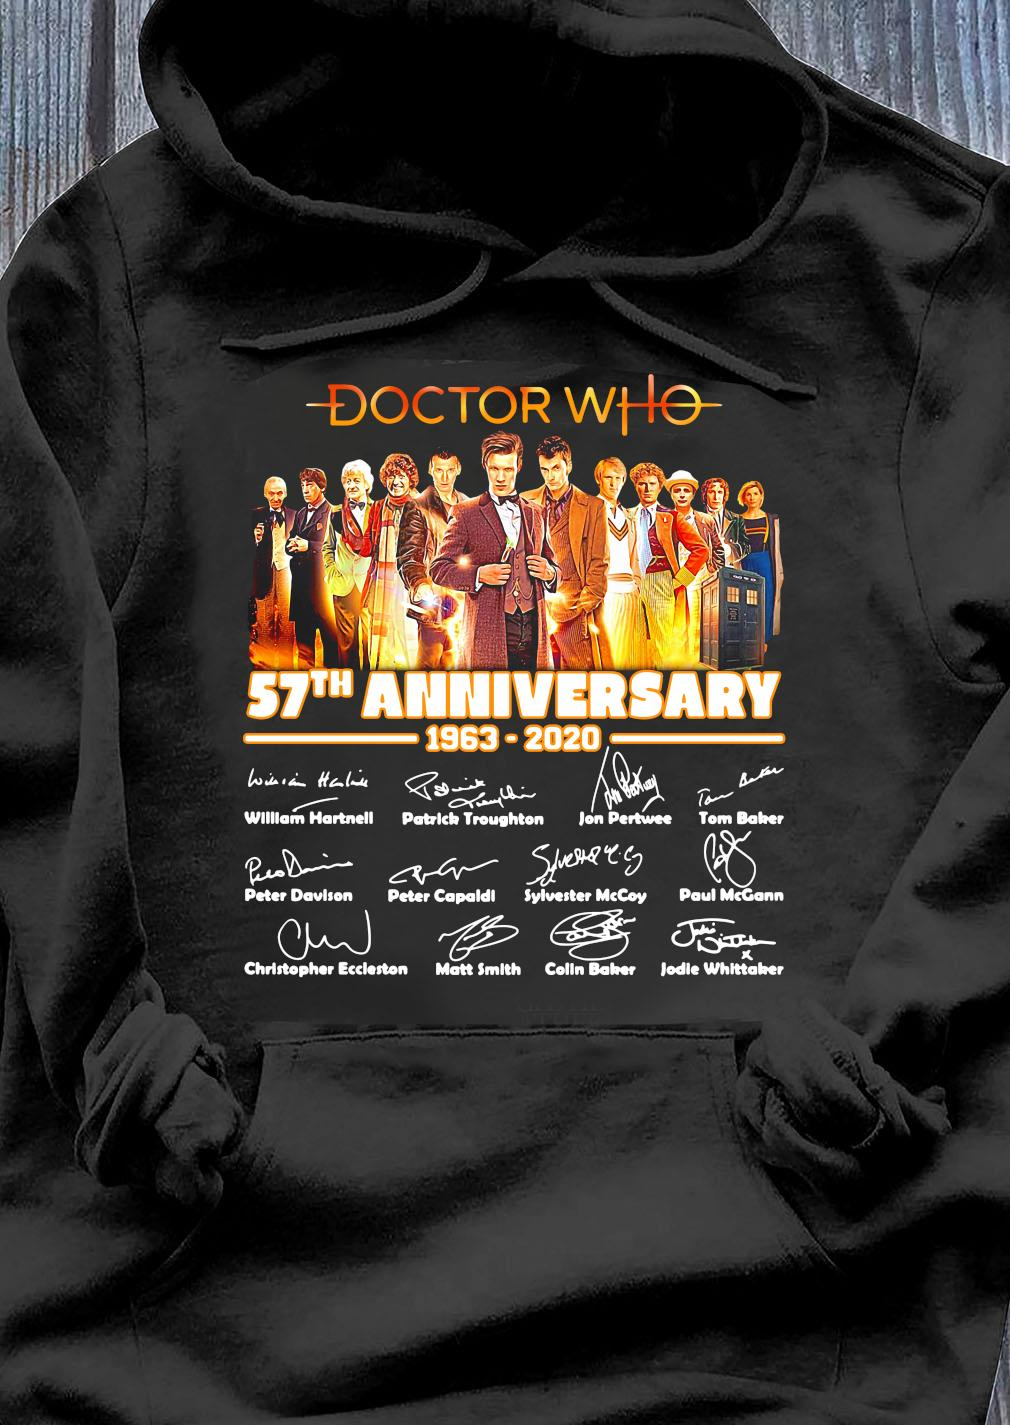 Doctor Who Tv Movies 57th Anniversary 1963-2020 Signature Shirt Hoodie